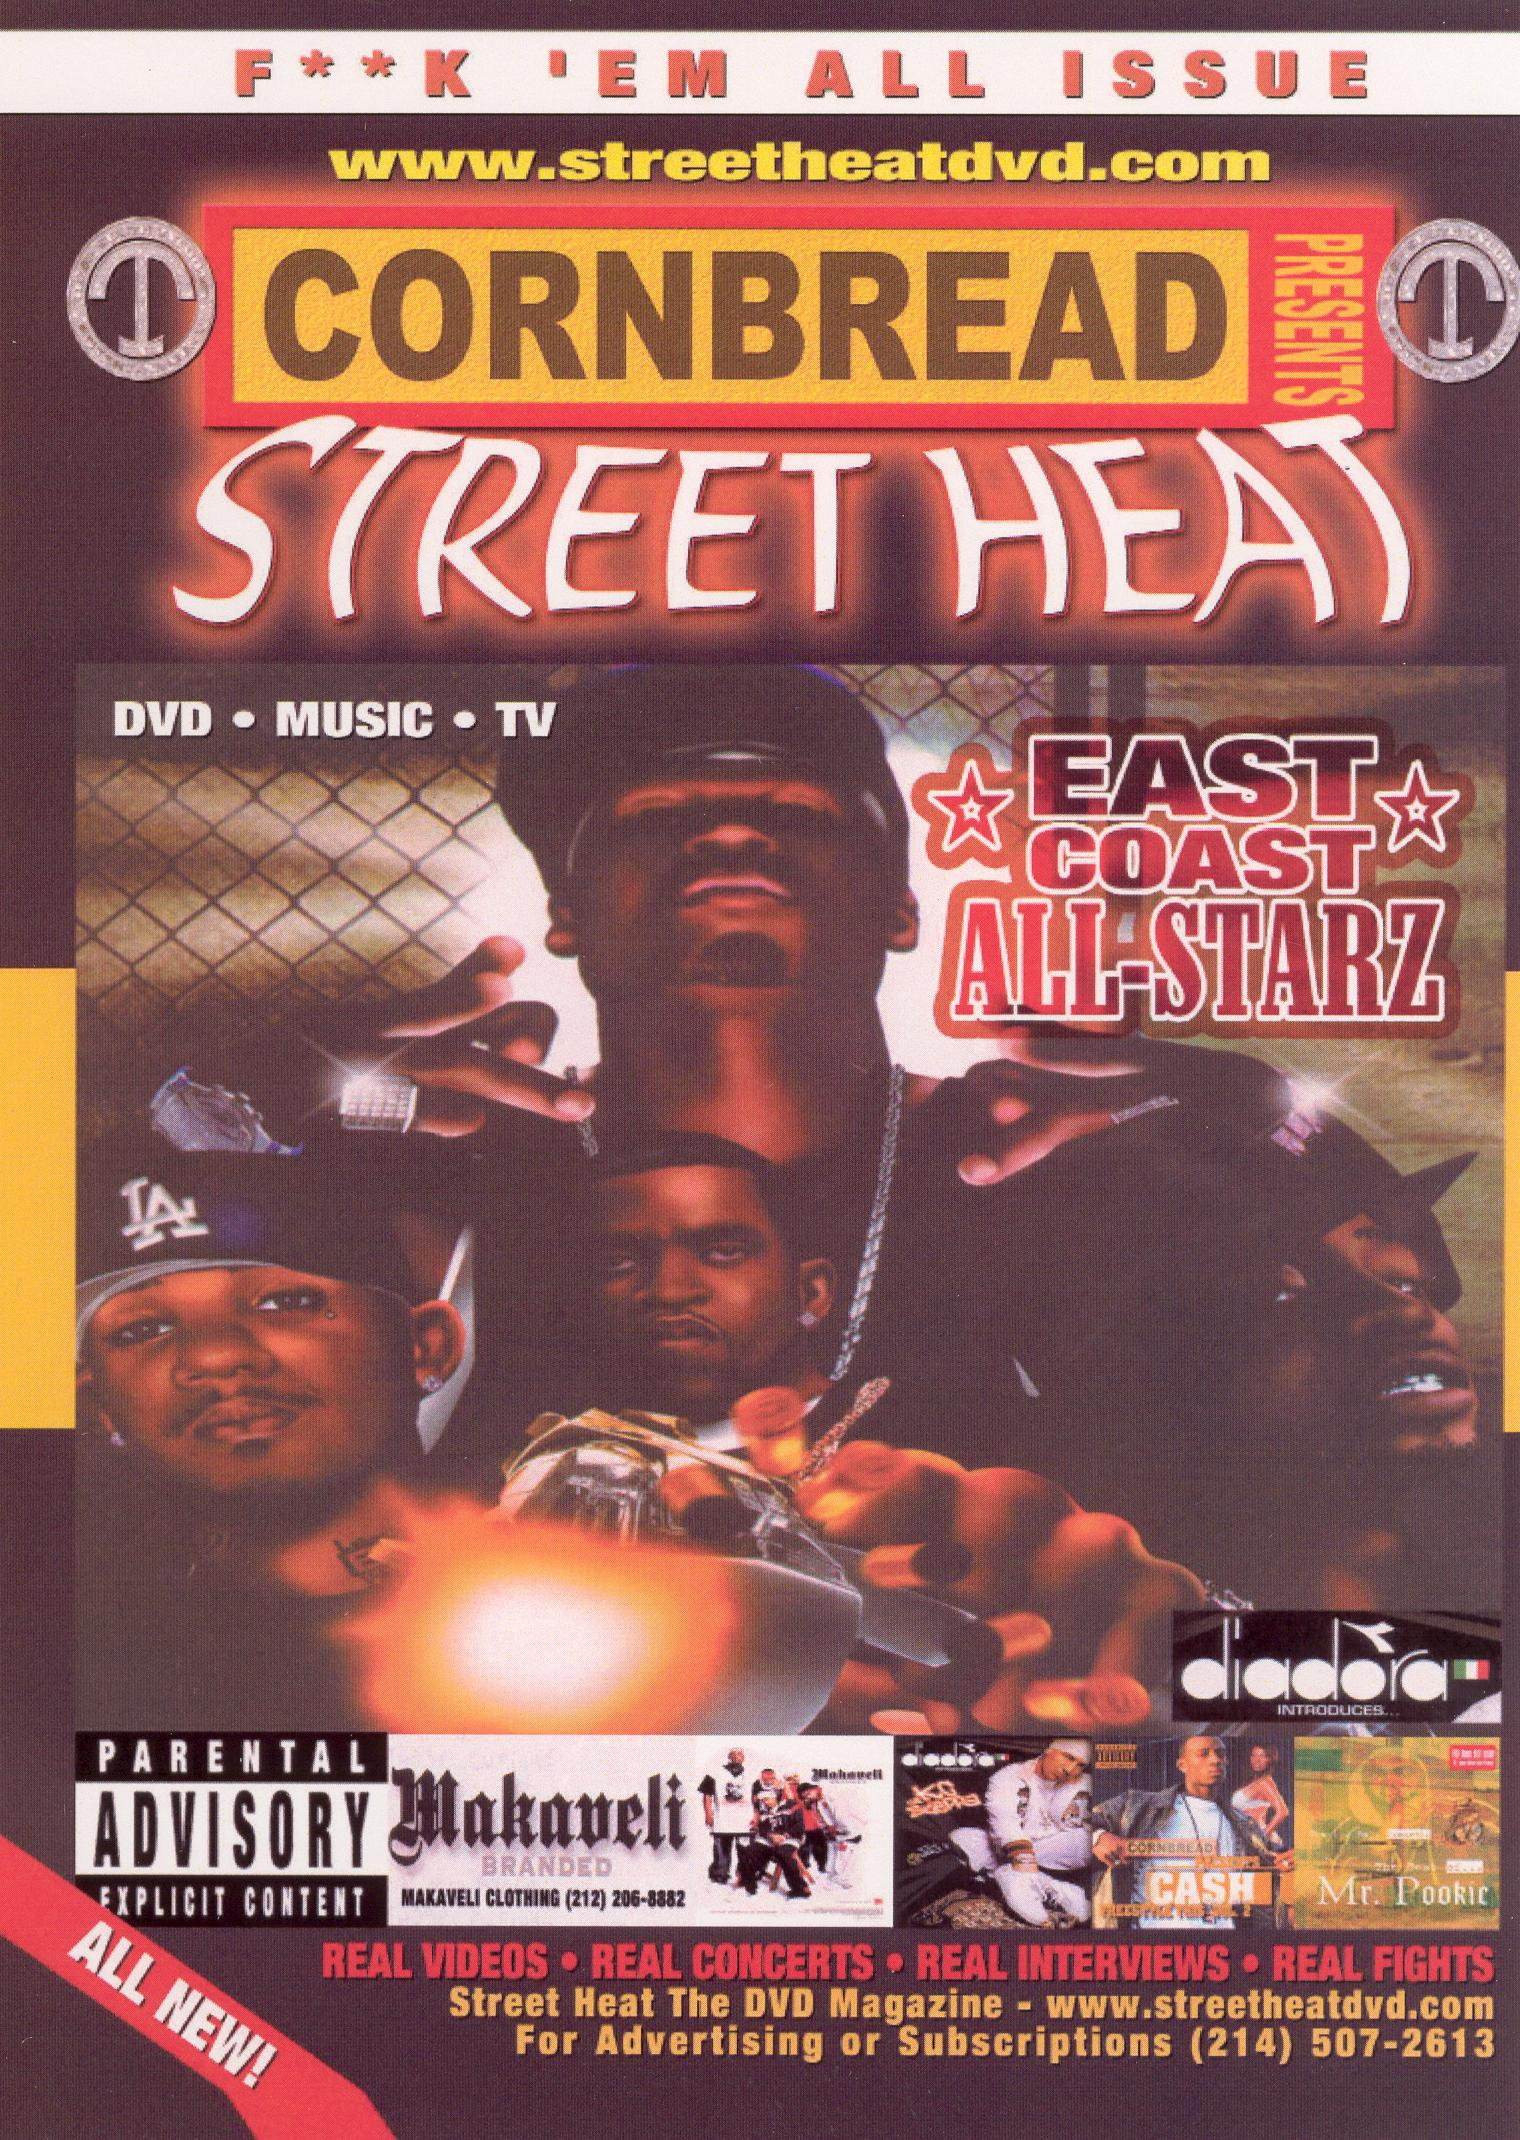 Cornbread Presents Street Heat, Vol. 12: East Coast All Starz